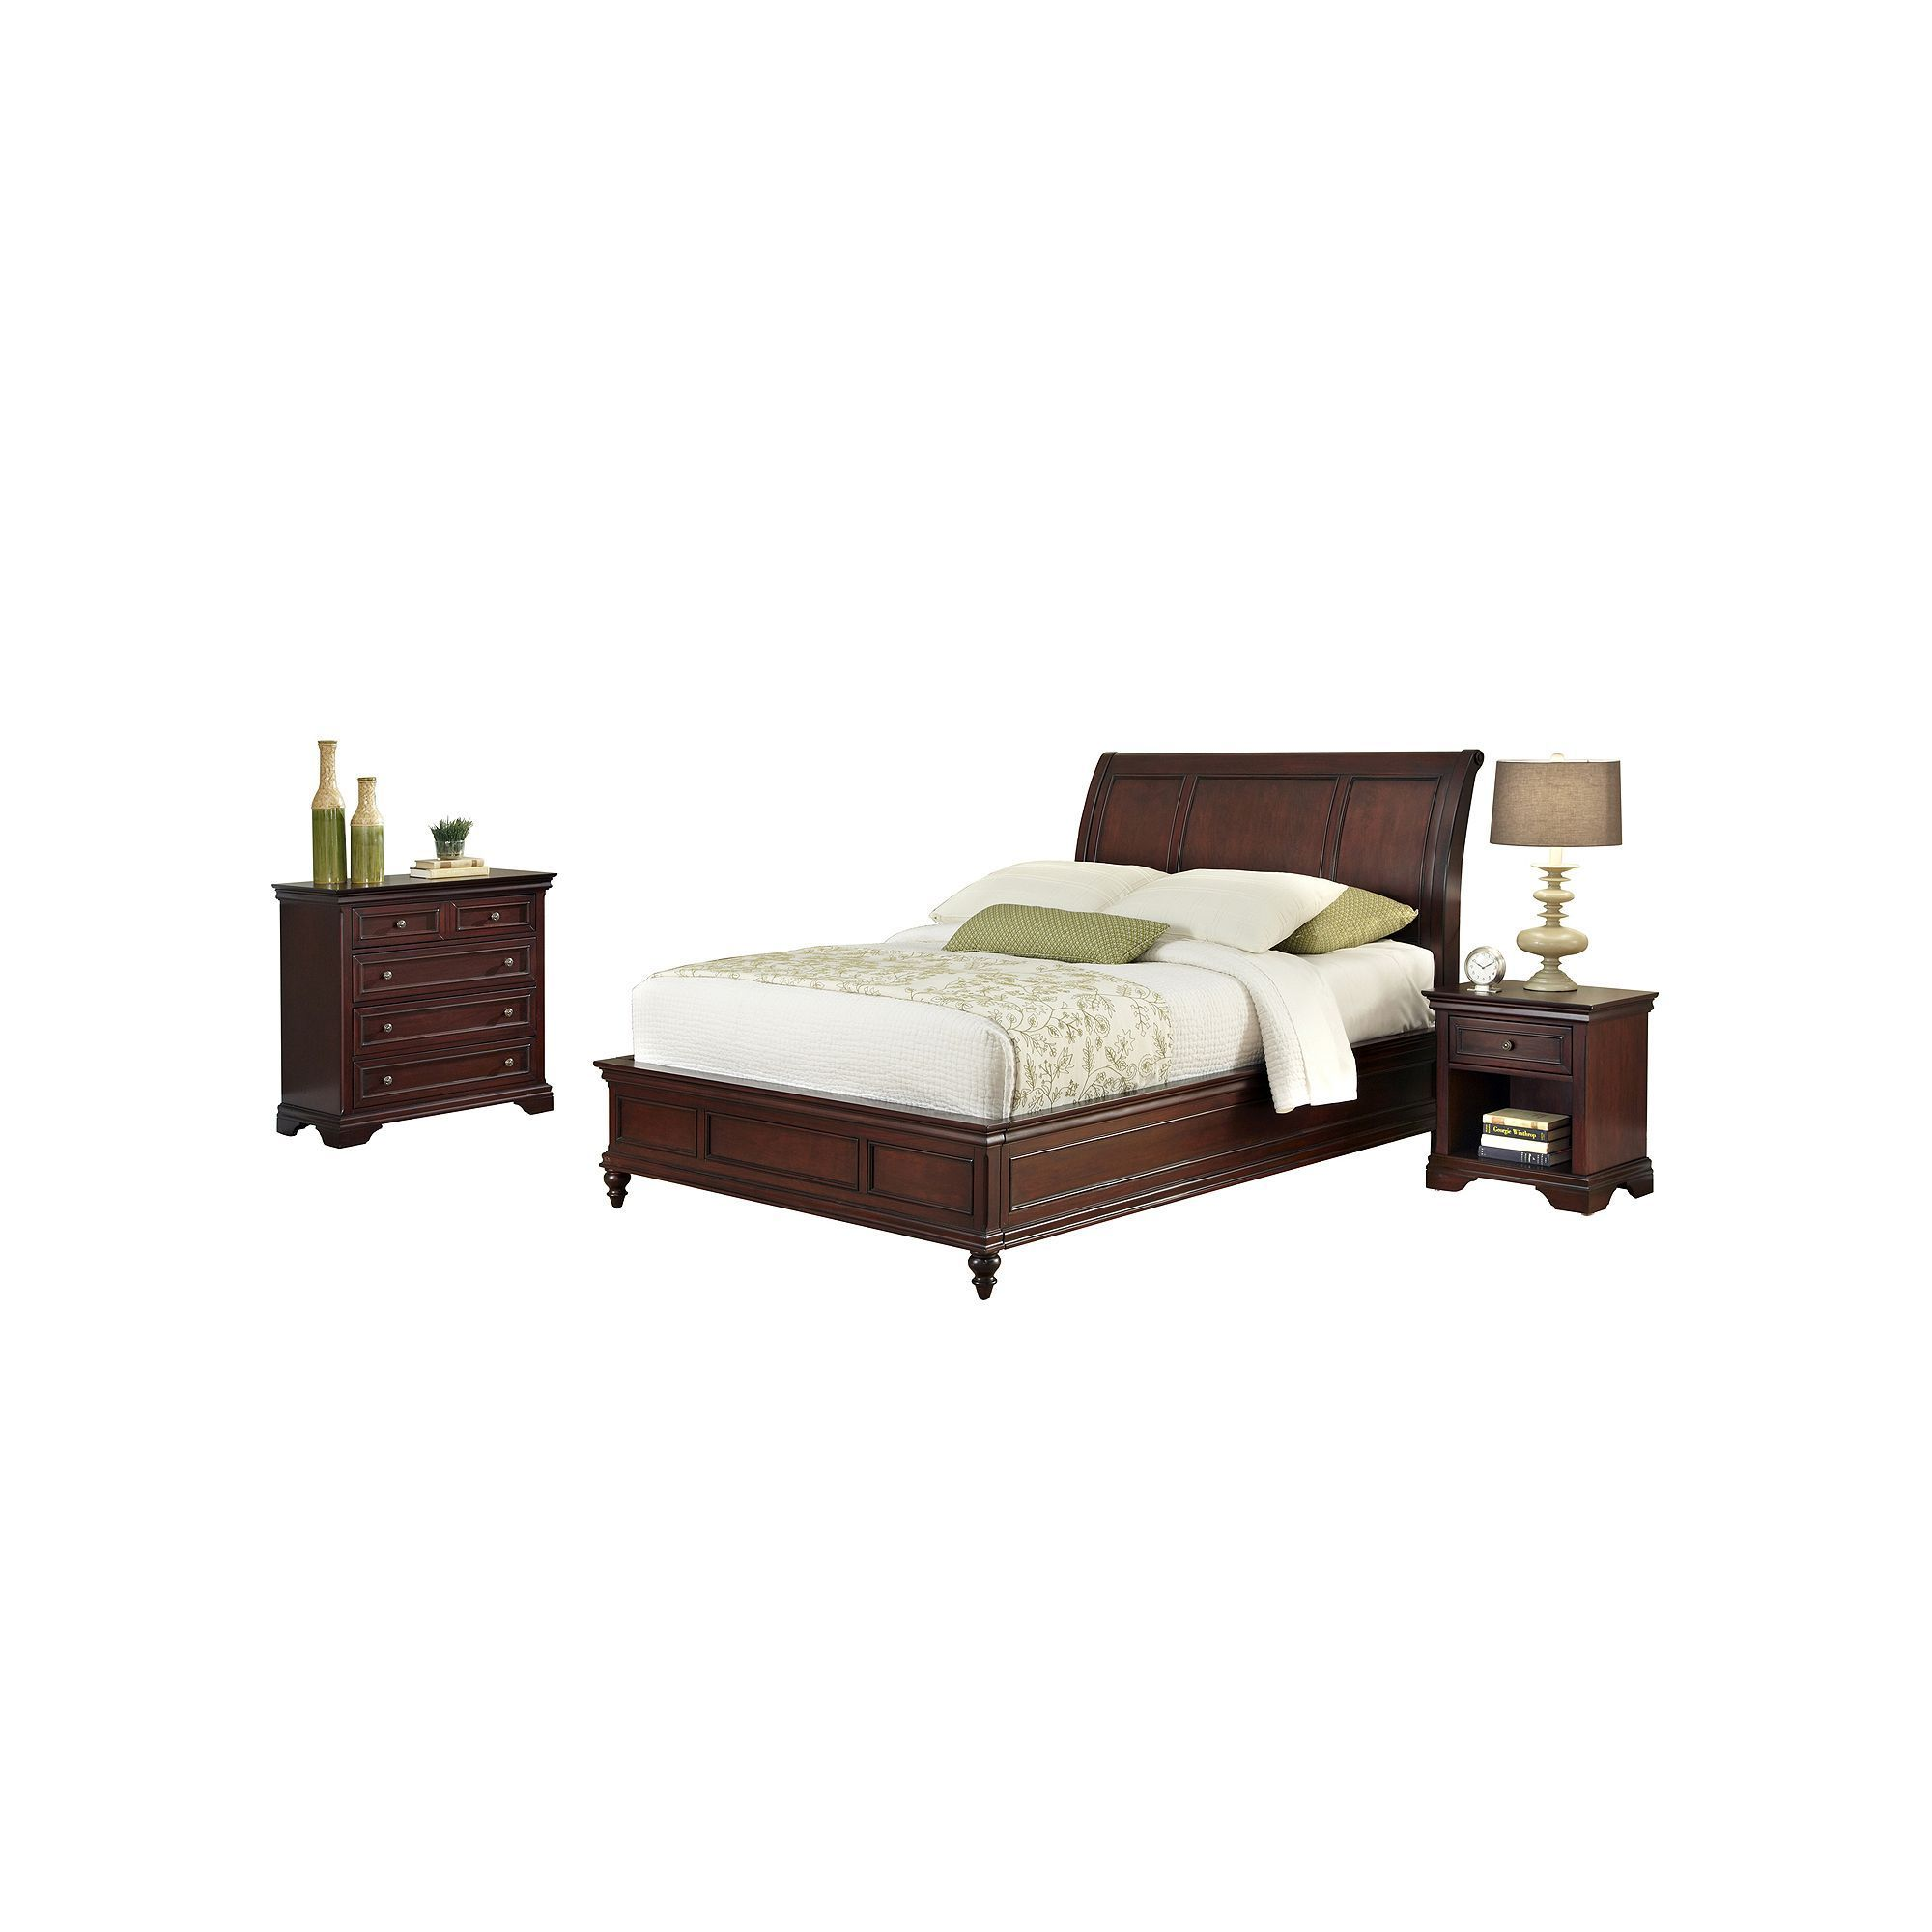 Home Styles Lafayette 5-pc. Queen Headboard